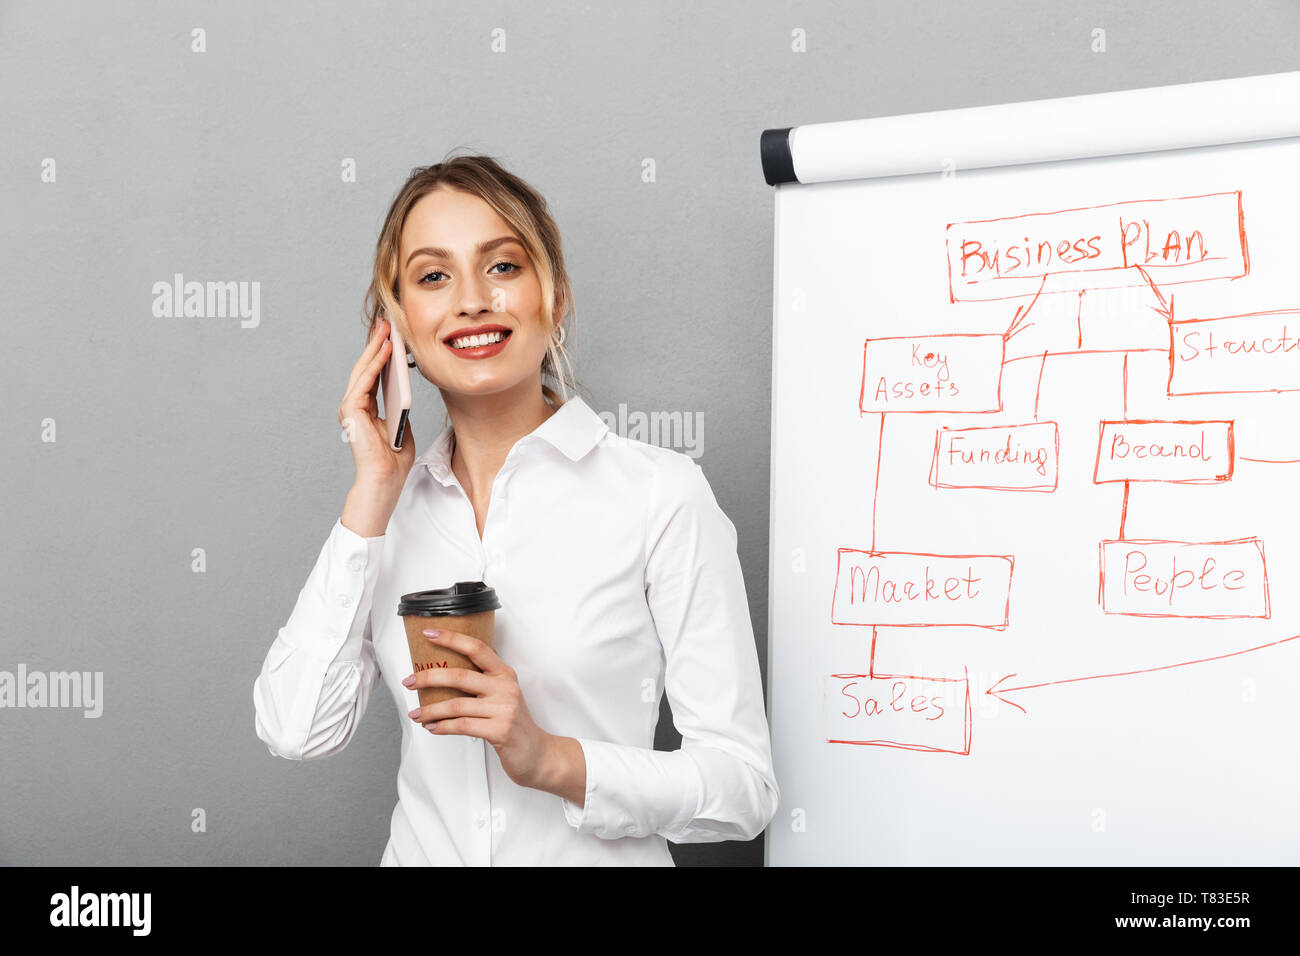 Image of lovely businesswoman in formal wear drinking coffee while making presentation using flipchart in the office isolated over gray background - Stock Image